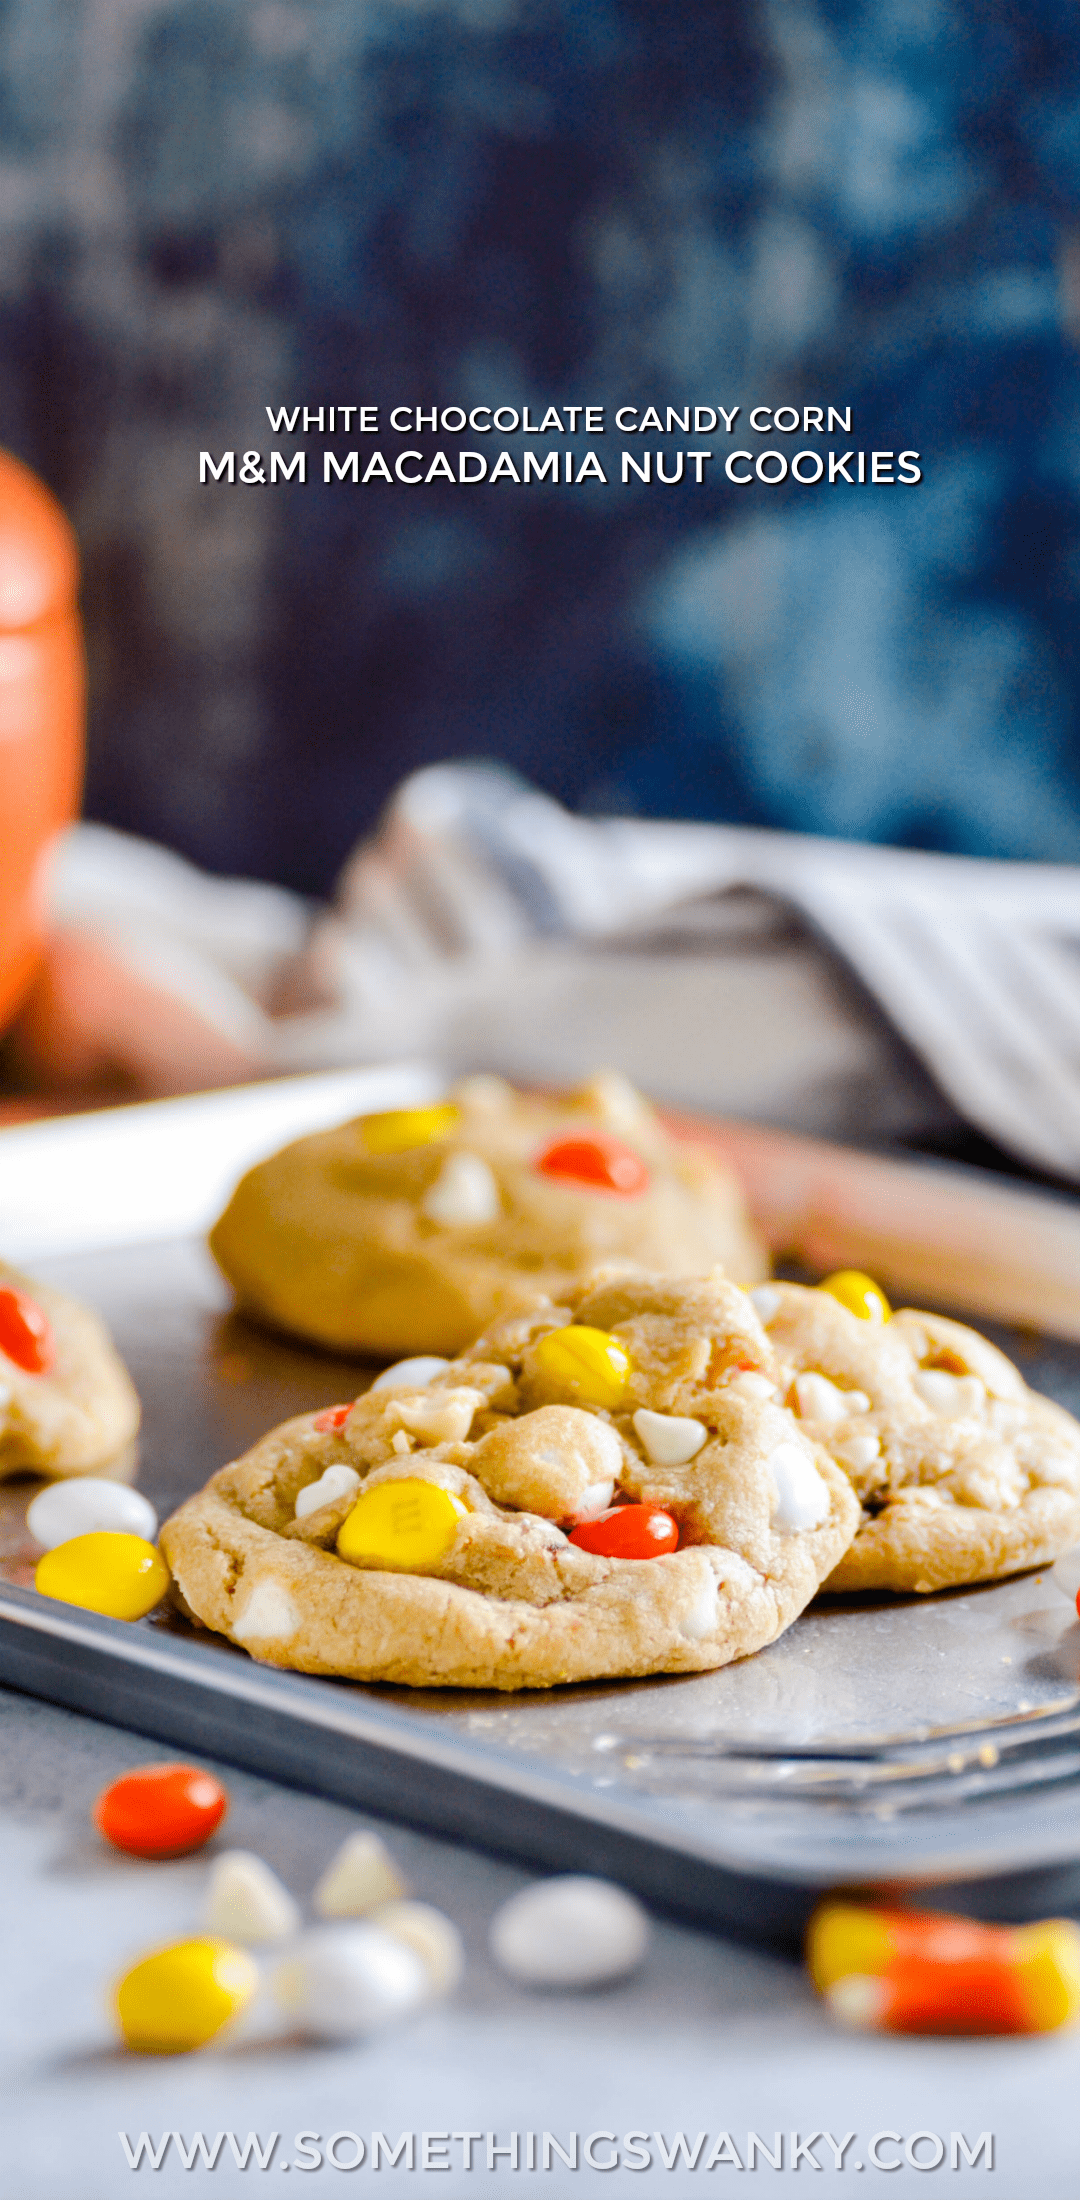 Candy Corn M&M Macadamia Nut Cookies